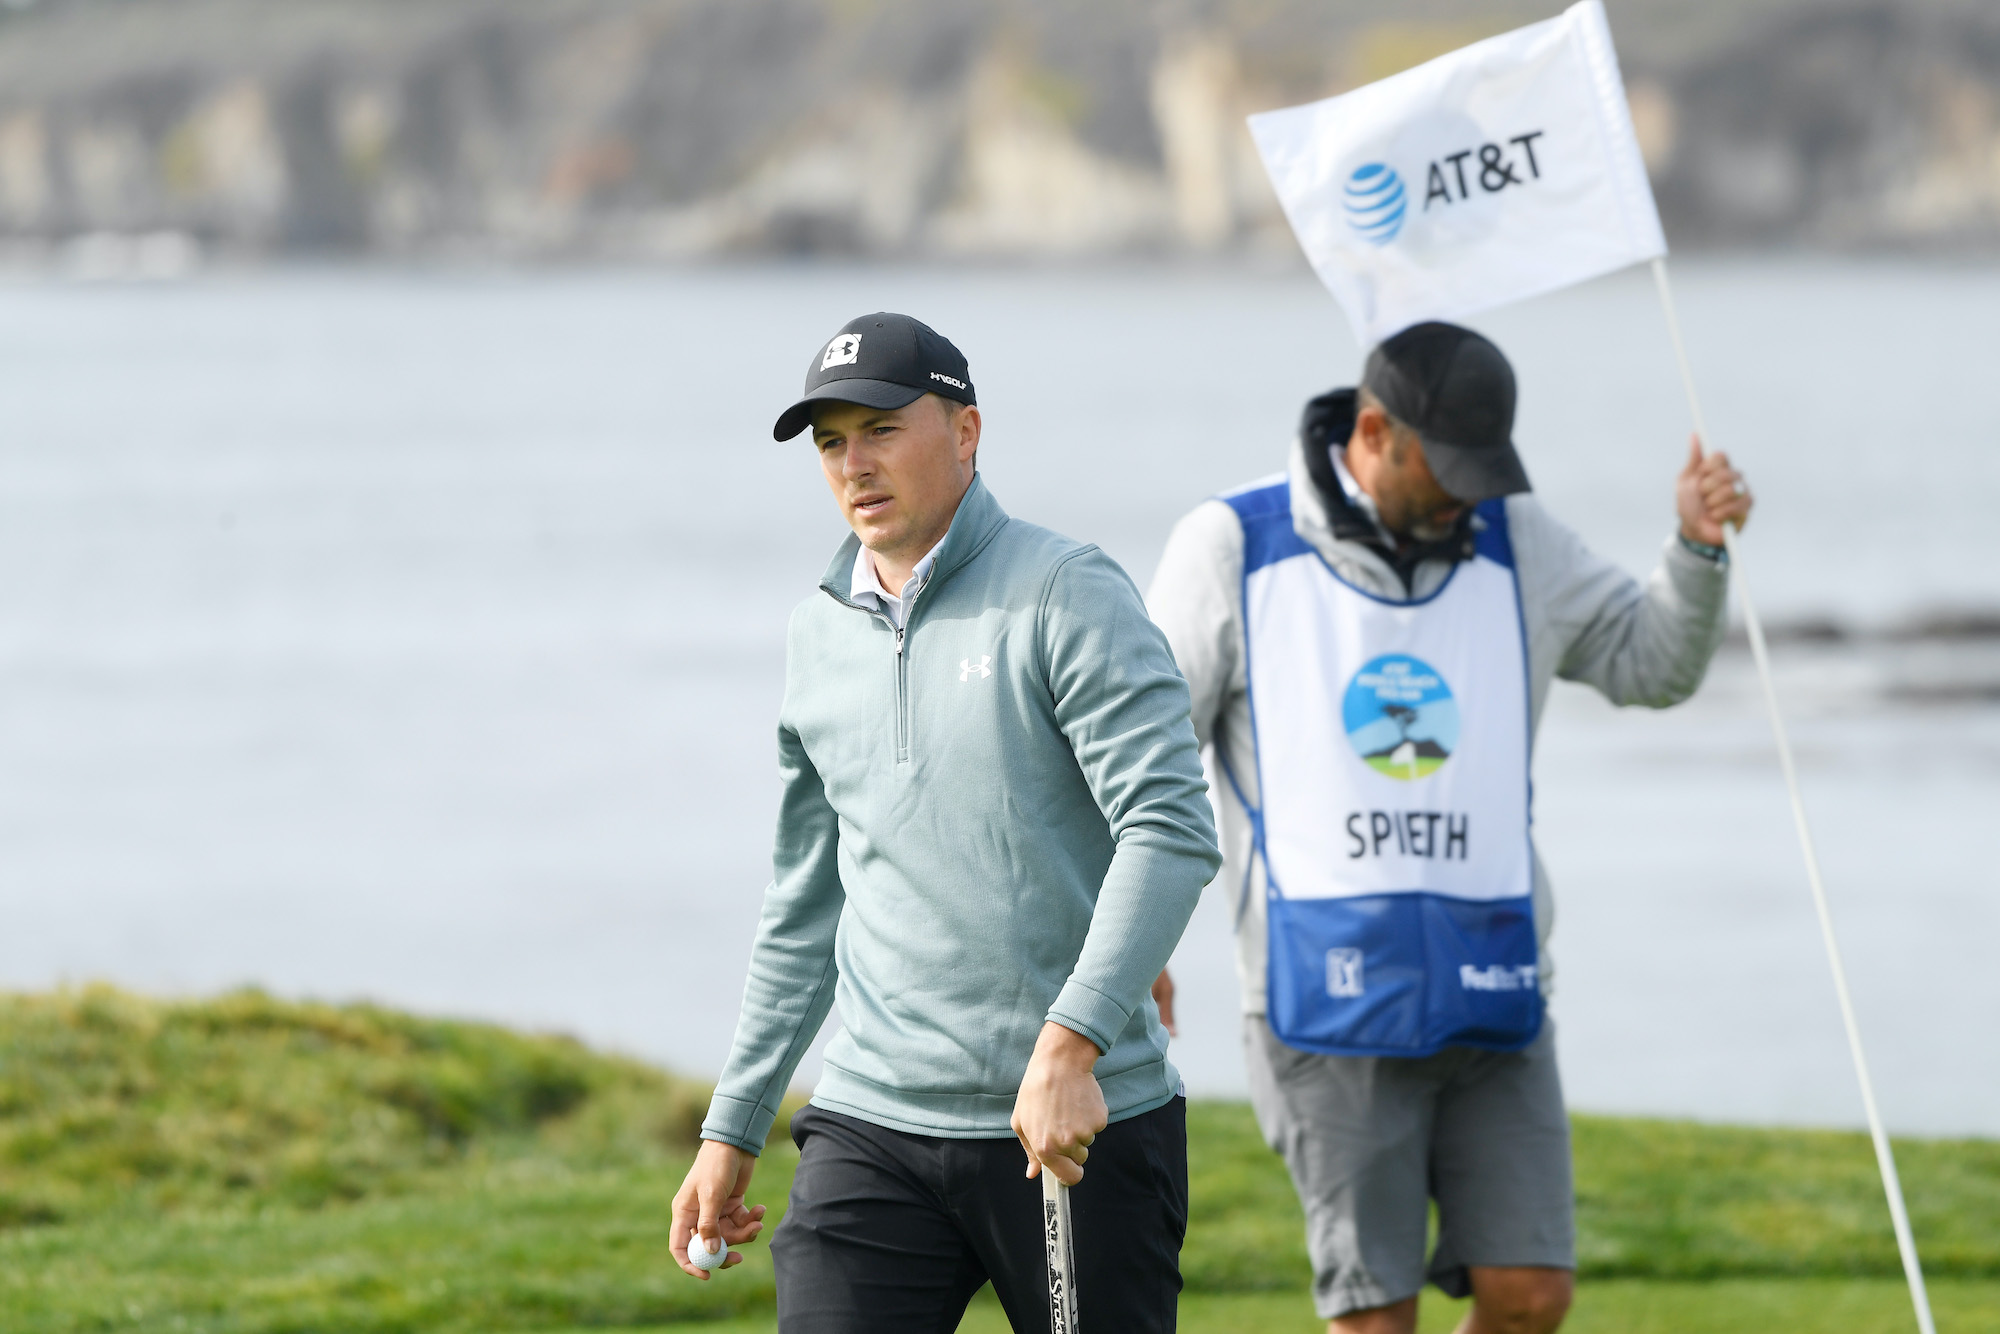 2021 AT&T Pebble Beach Pro-Am: Round 3 - Jordan Reacts to Birdie on the 4th